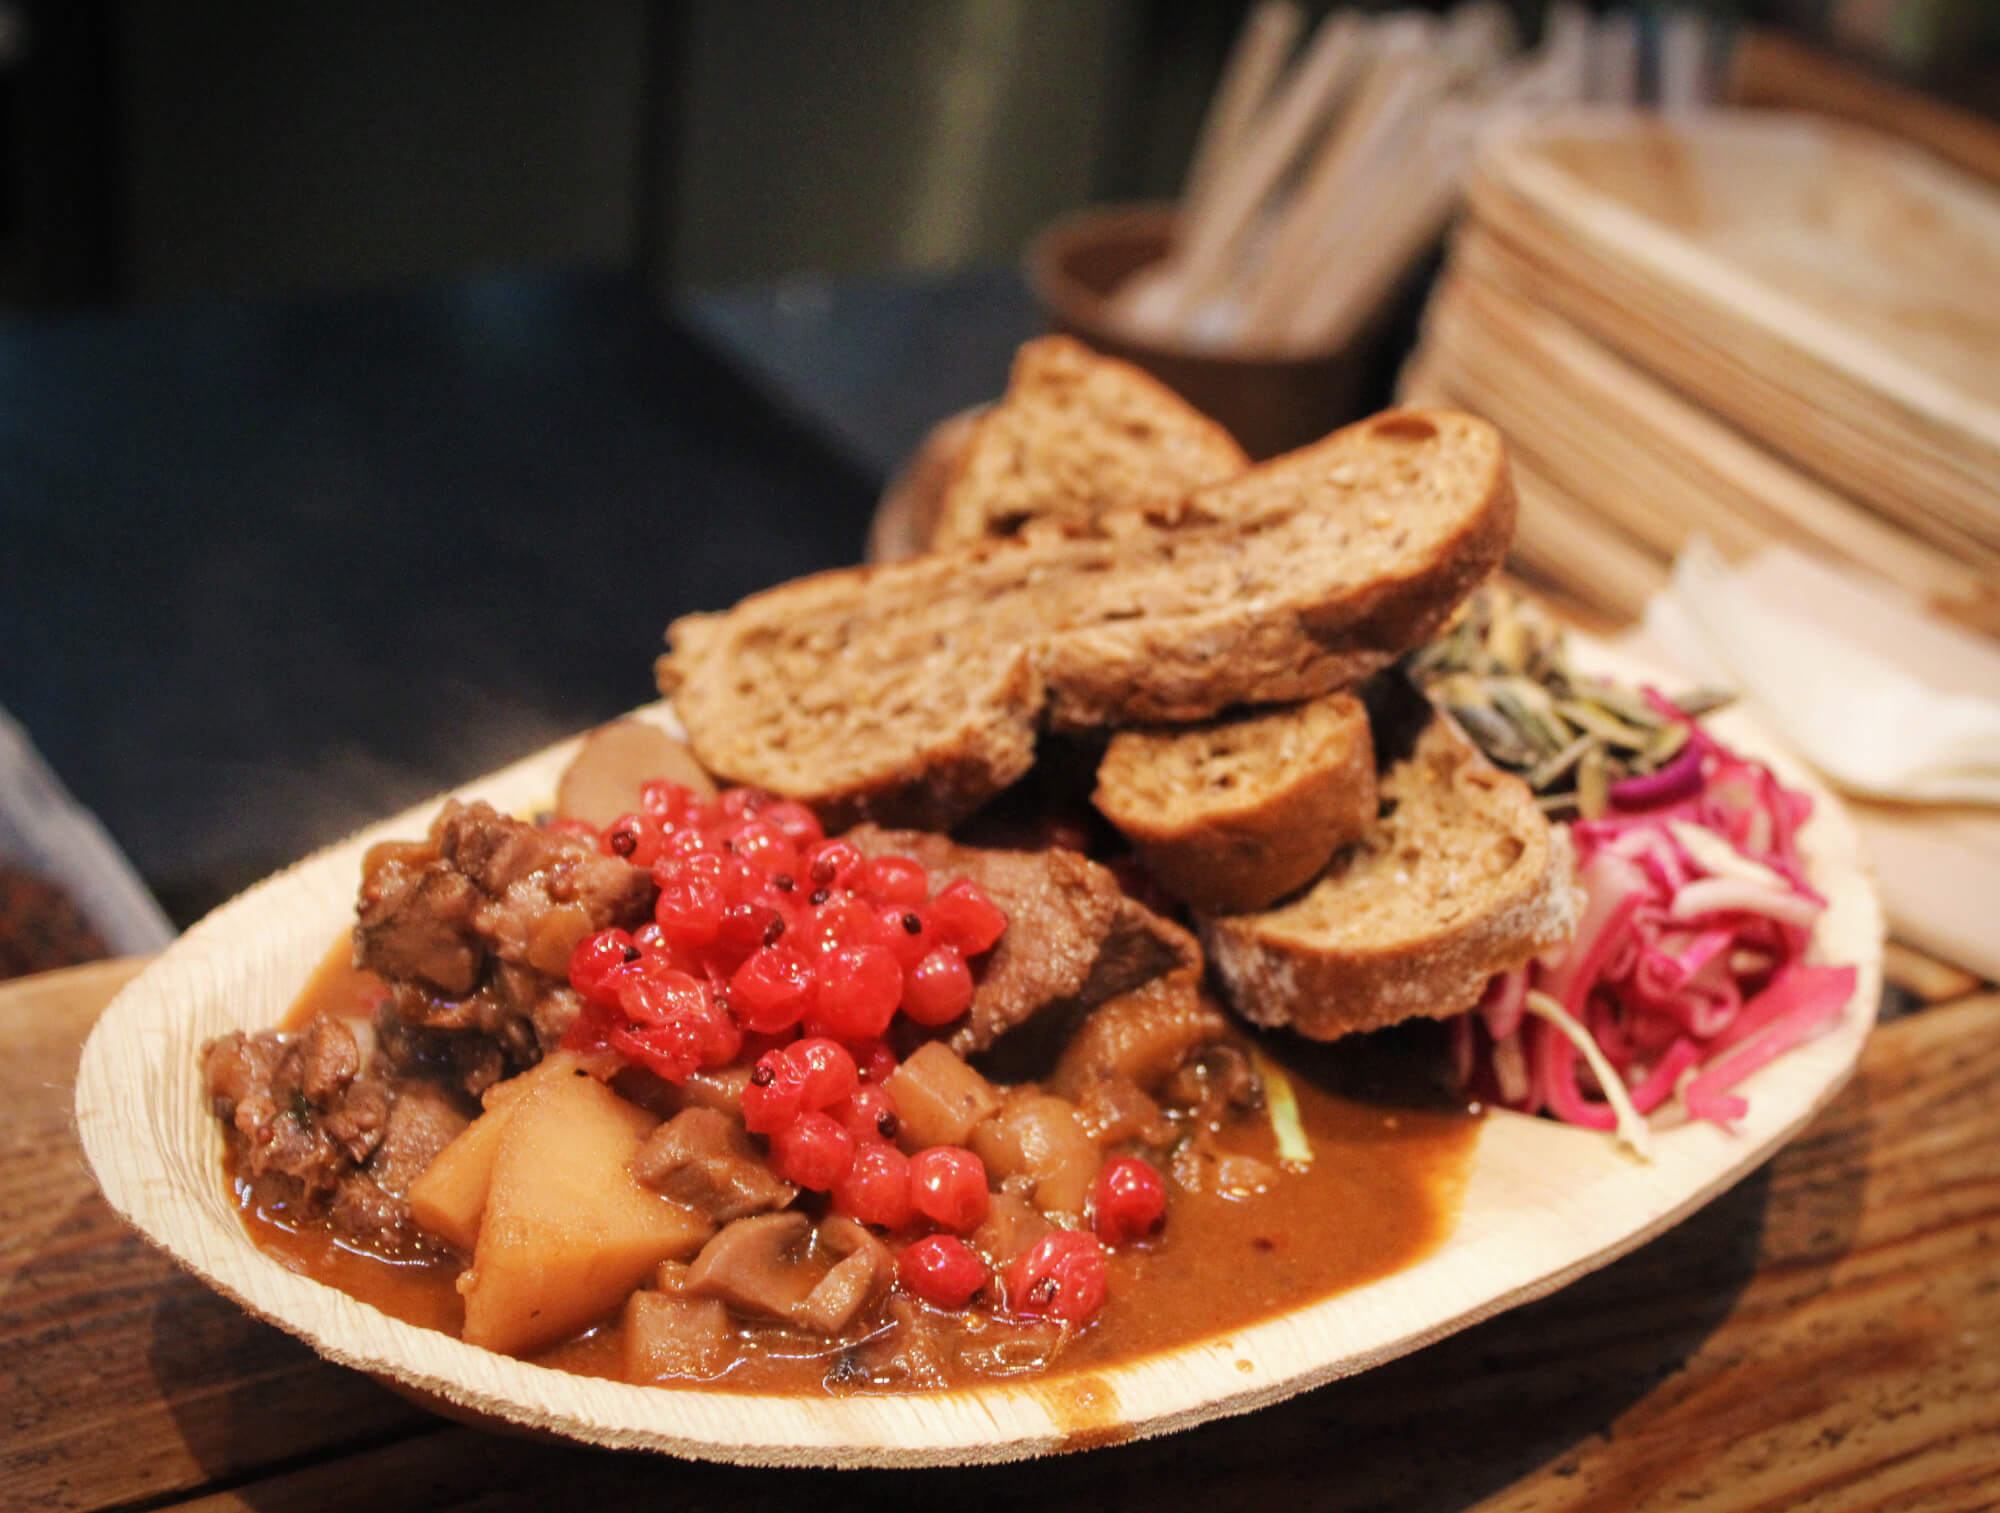 Venison stew from Paper Island Street Food Market in Copenhagen. The perfect warm Danish stew fora chilly winter in Copenhagen.